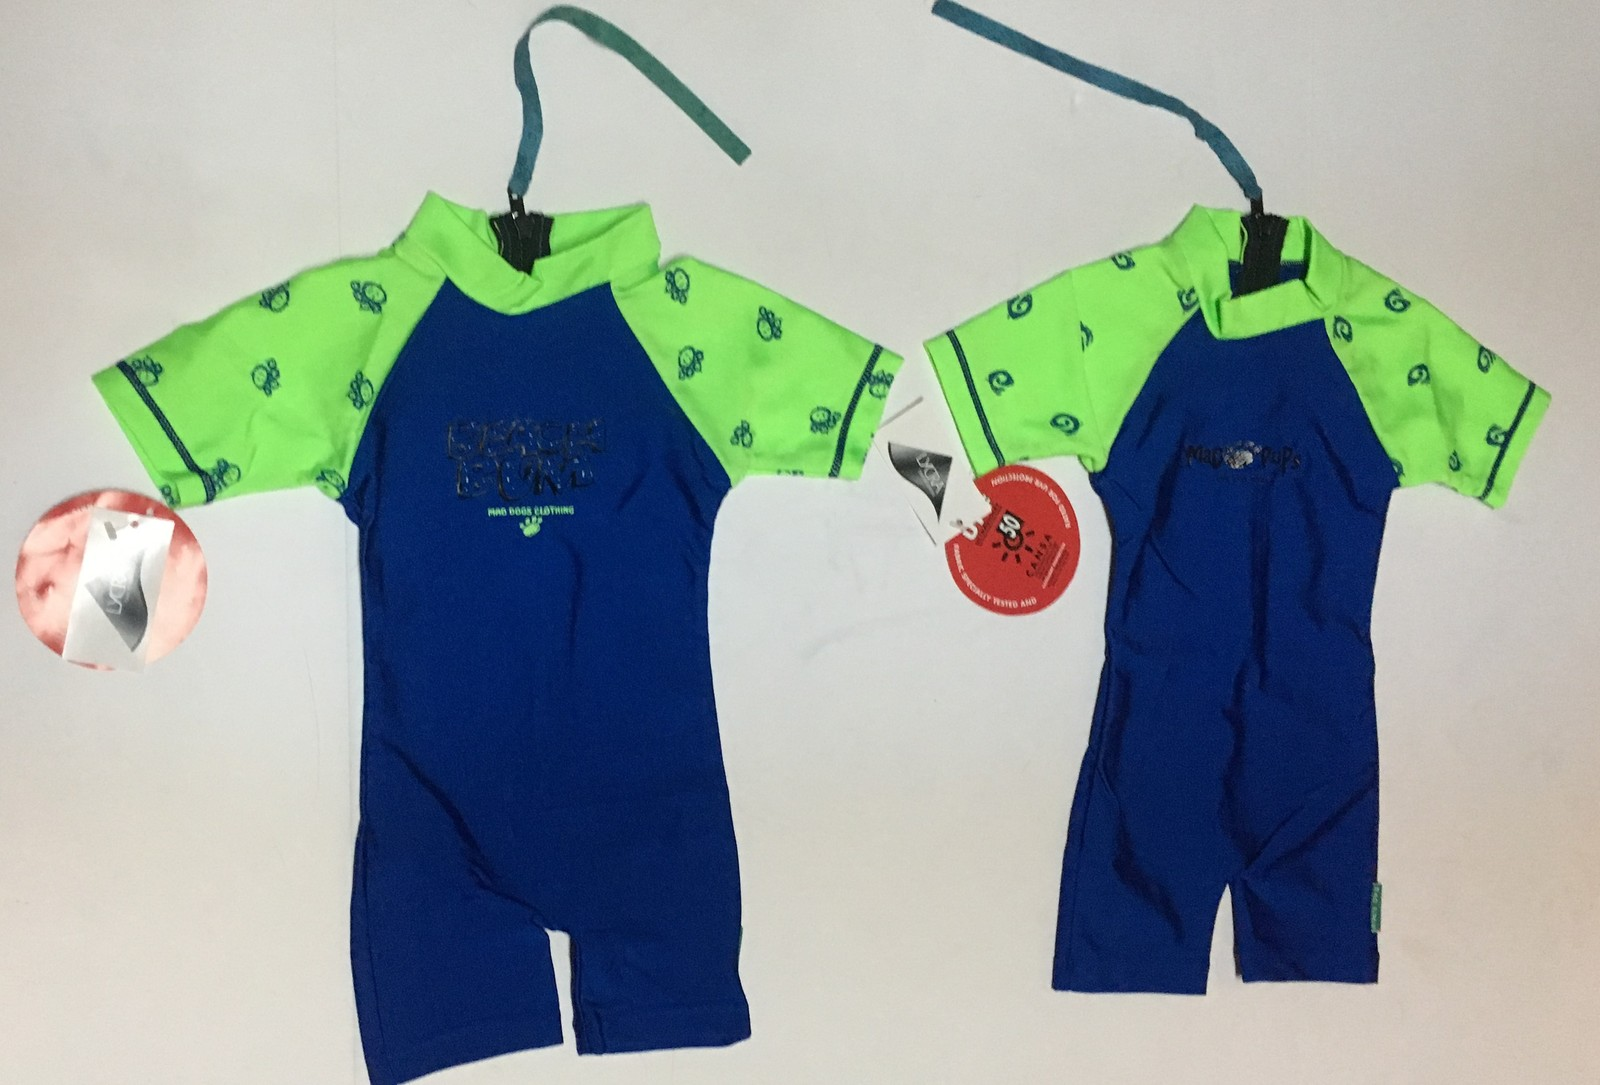 Infant One Piece Swimsuit Lycra 50 UPF 6-12 Months Blue & Green Variety Features